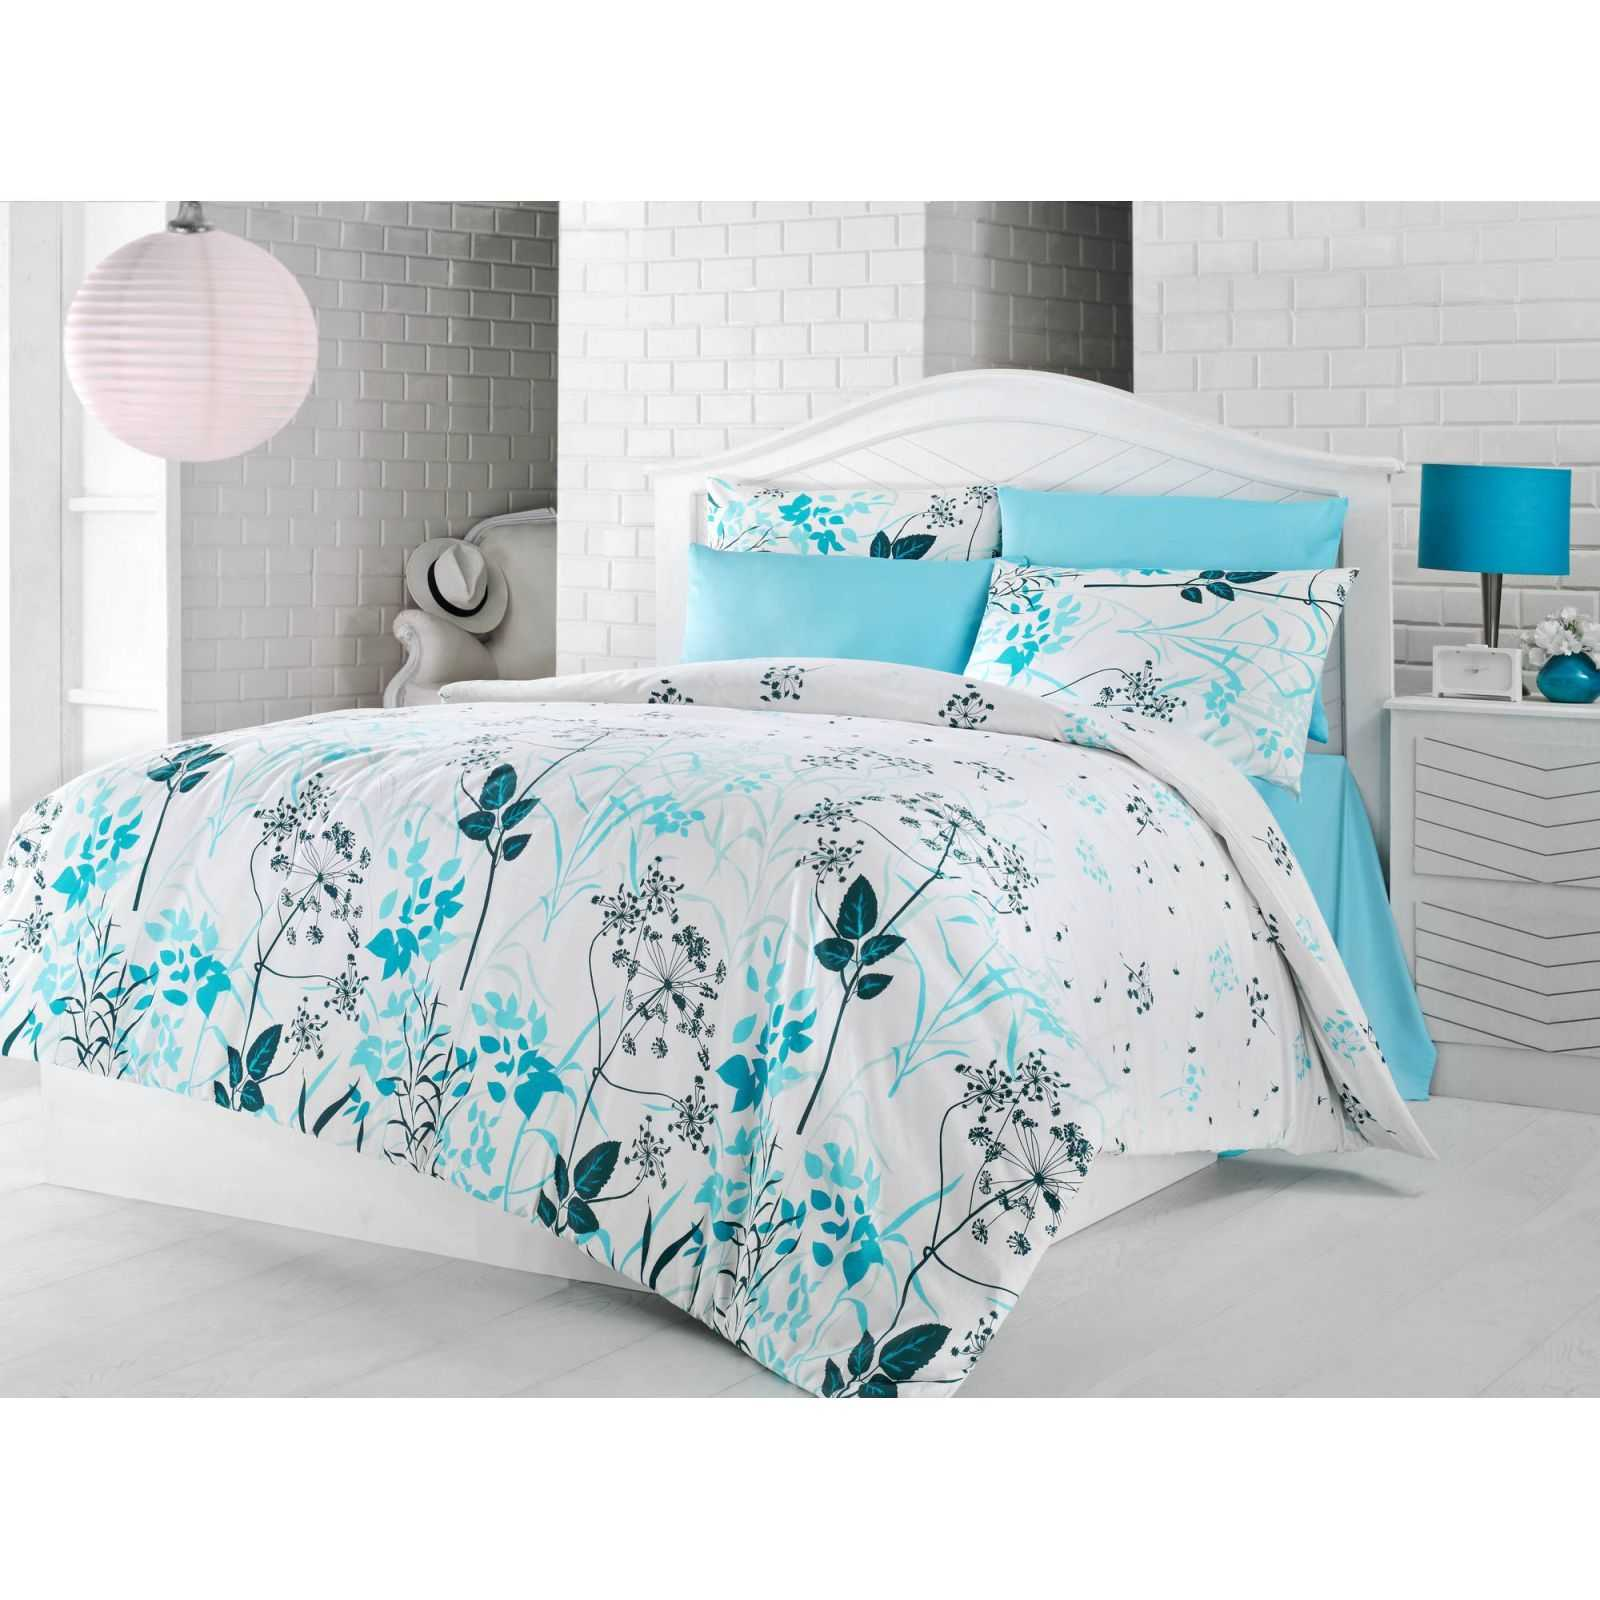 cotton box parure de lit turquoise brandalley. Black Bedroom Furniture Sets. Home Design Ideas